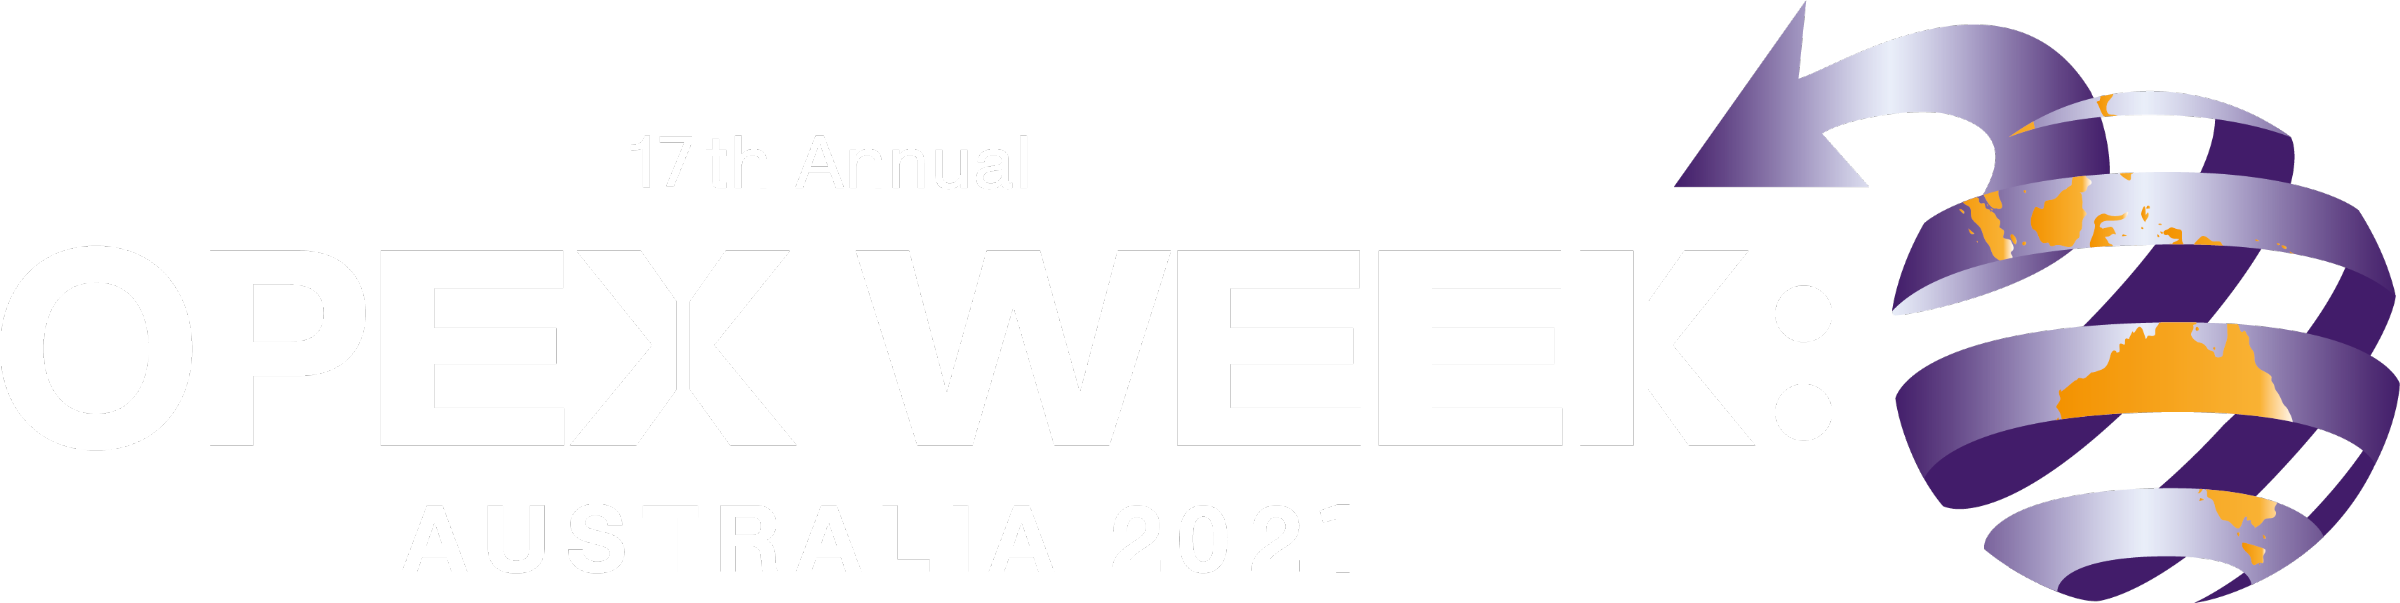 Operational Excellence Week Australia 2021